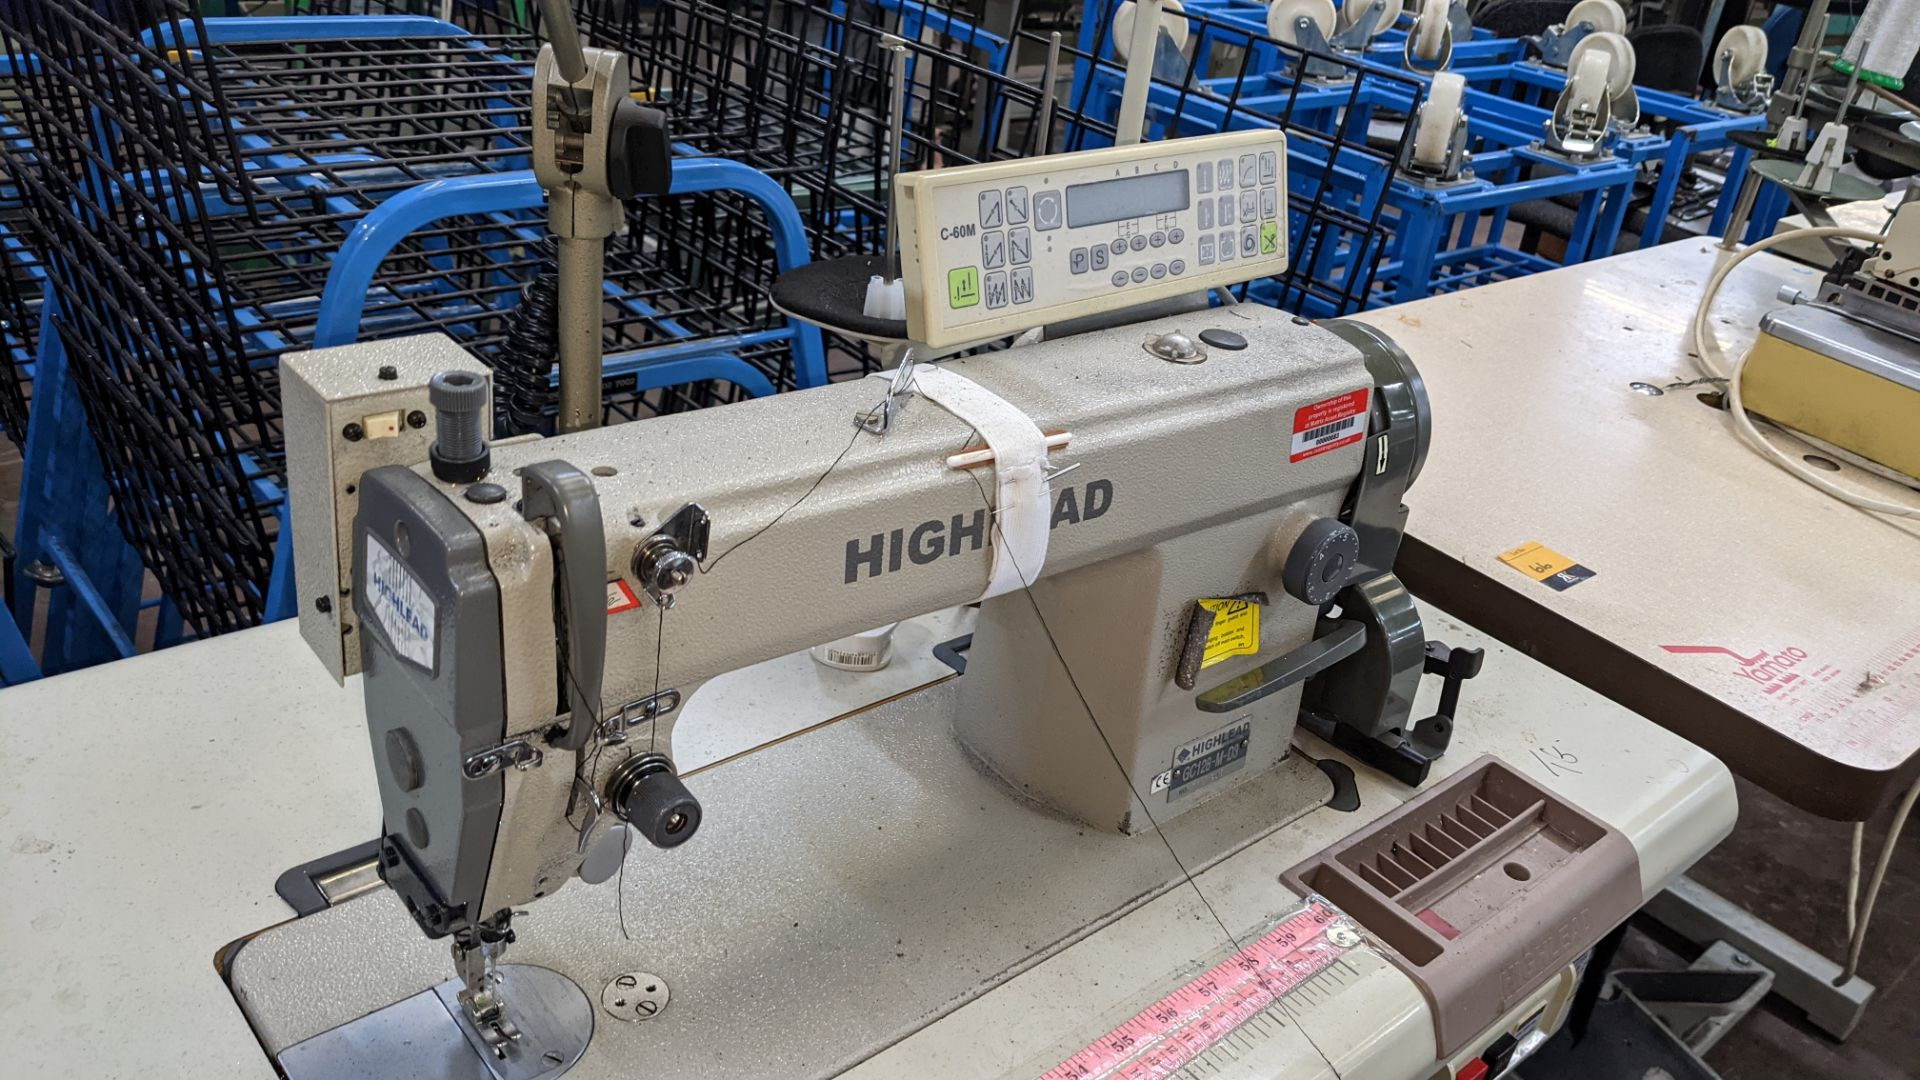 Highlead model GC128-M-D3 sewing machine with model C-60M digital controller - Image 10 of 18